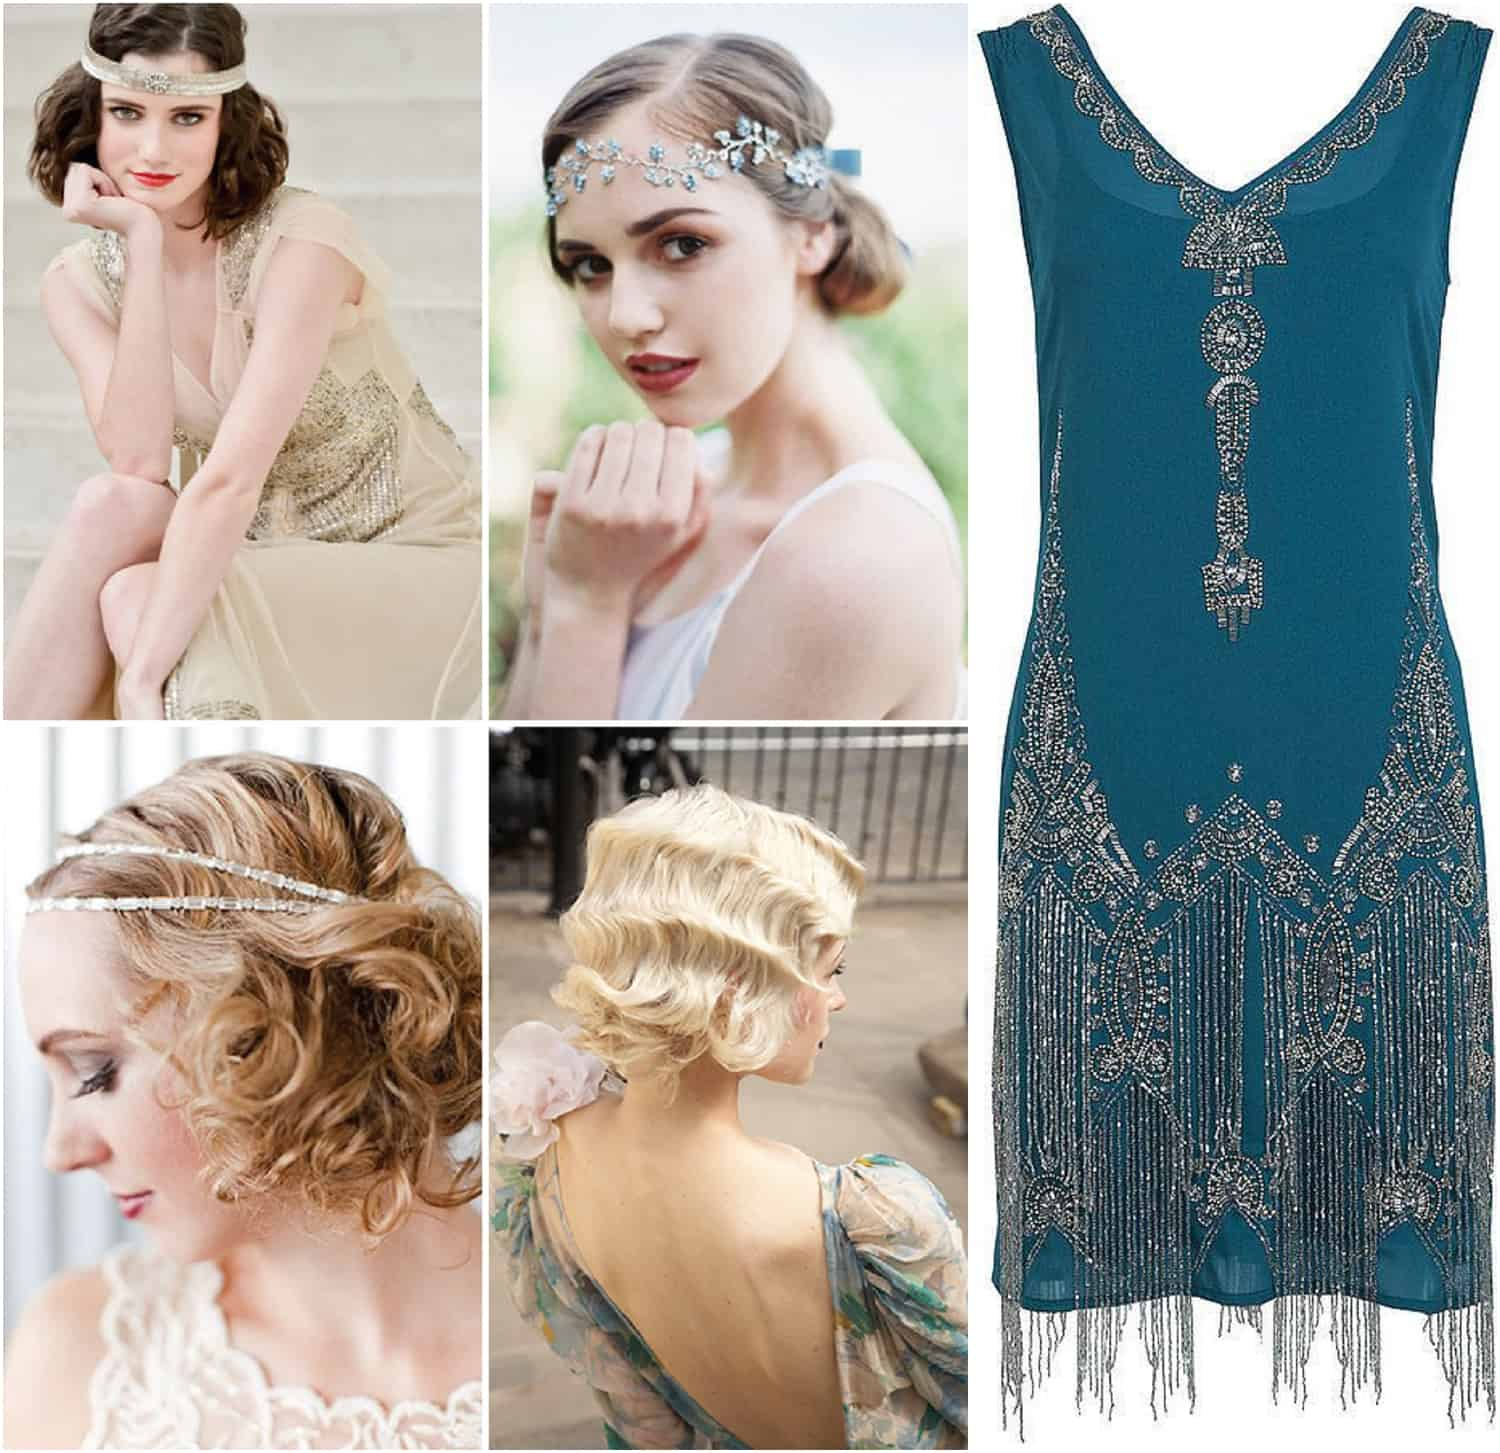 1920s headpieces, 1920s dress, 1920s wedding